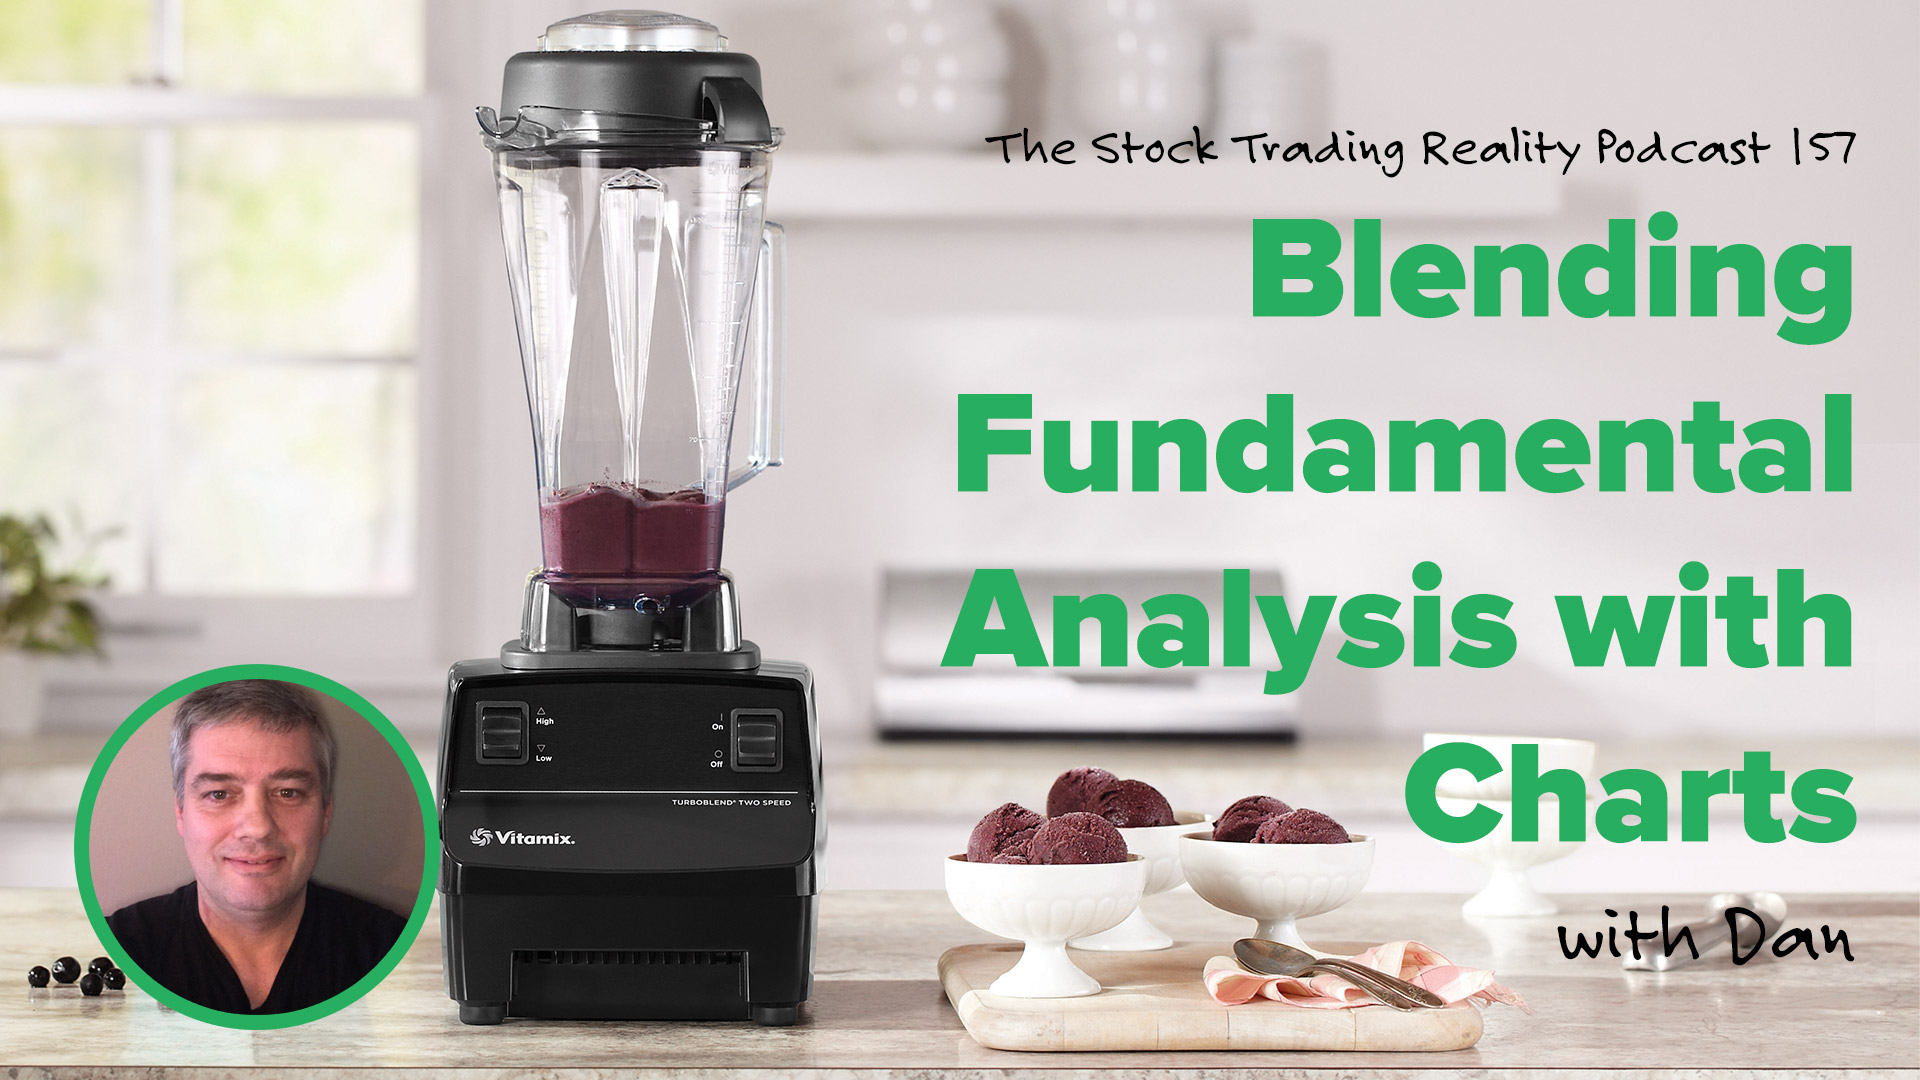 STR 157: Blending Fundamental Analysis with Charts